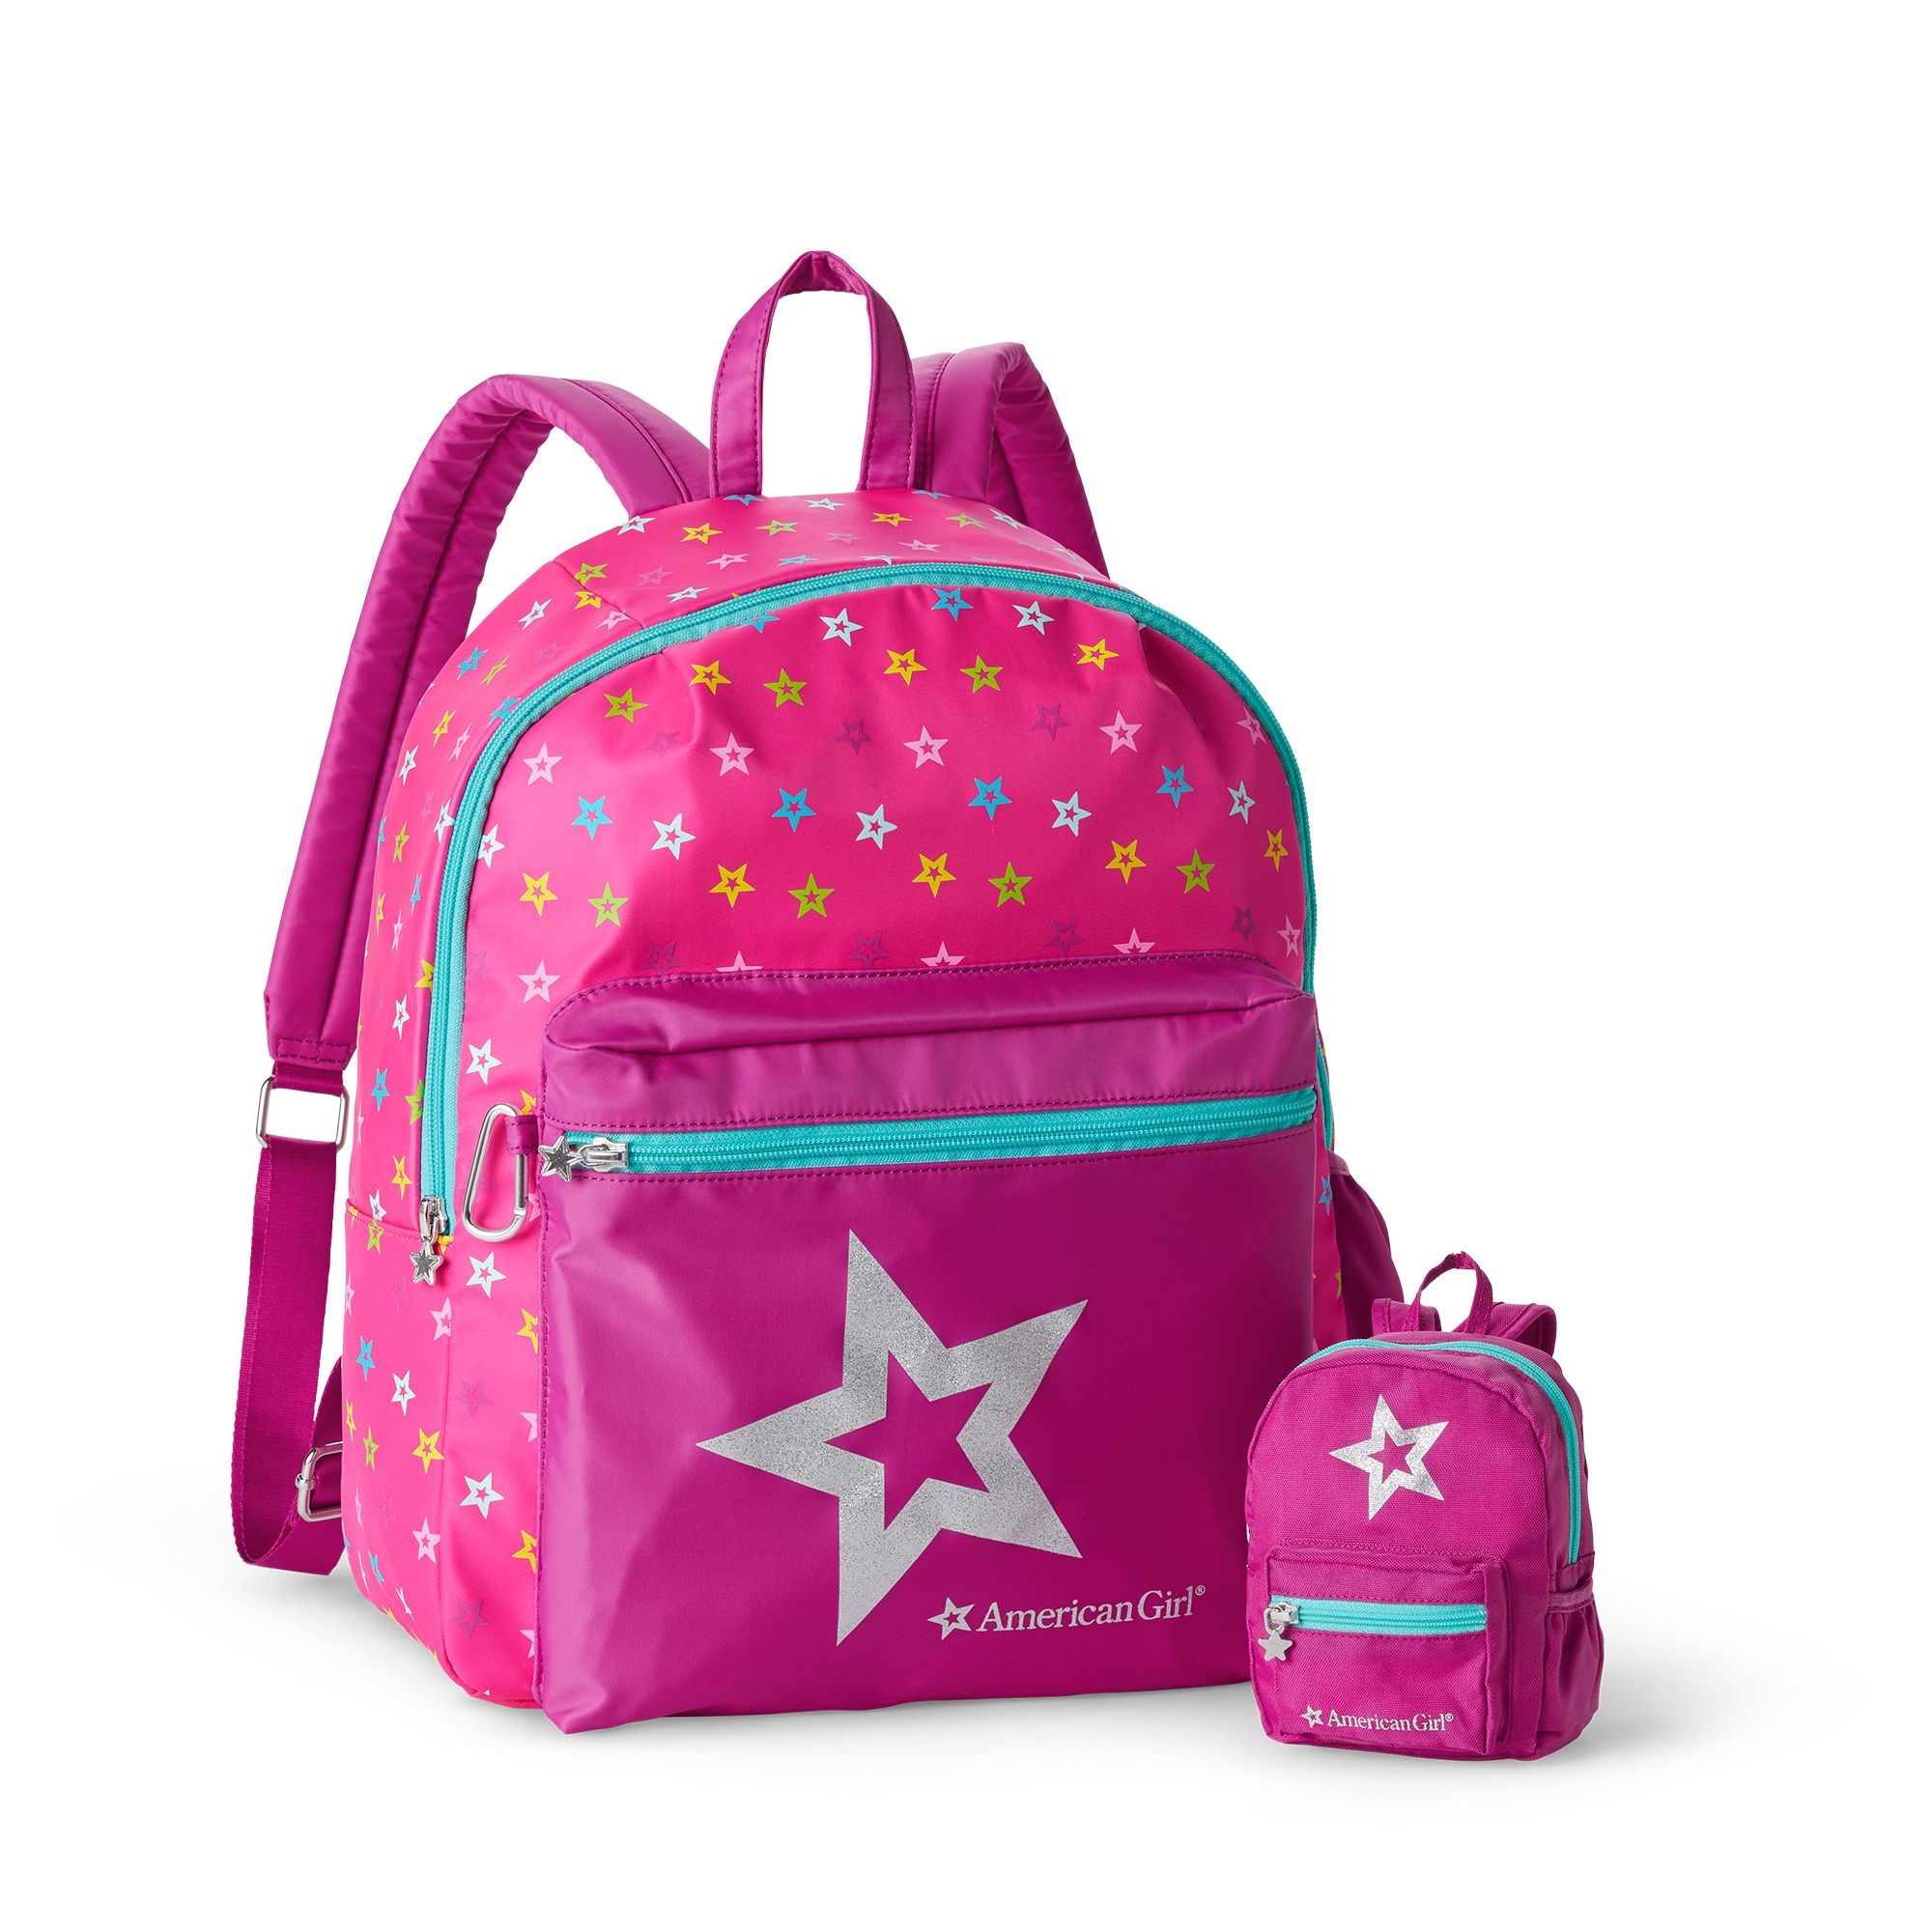 American Girl Backpack Set